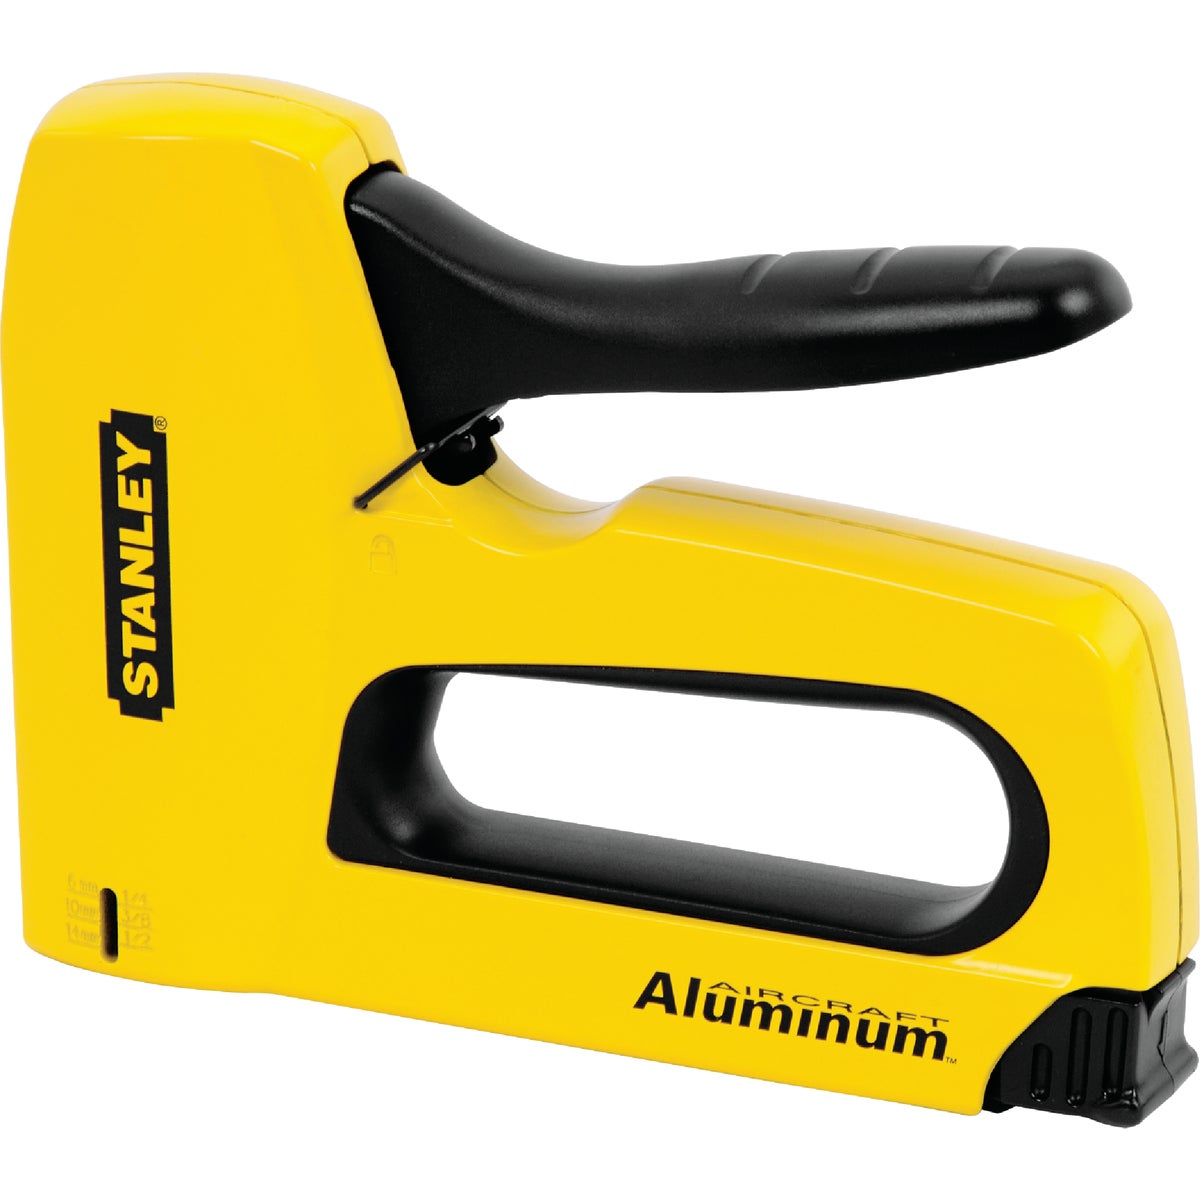 HEAVY DUTY STAPLE GUN - TR150 by Stanley Tools